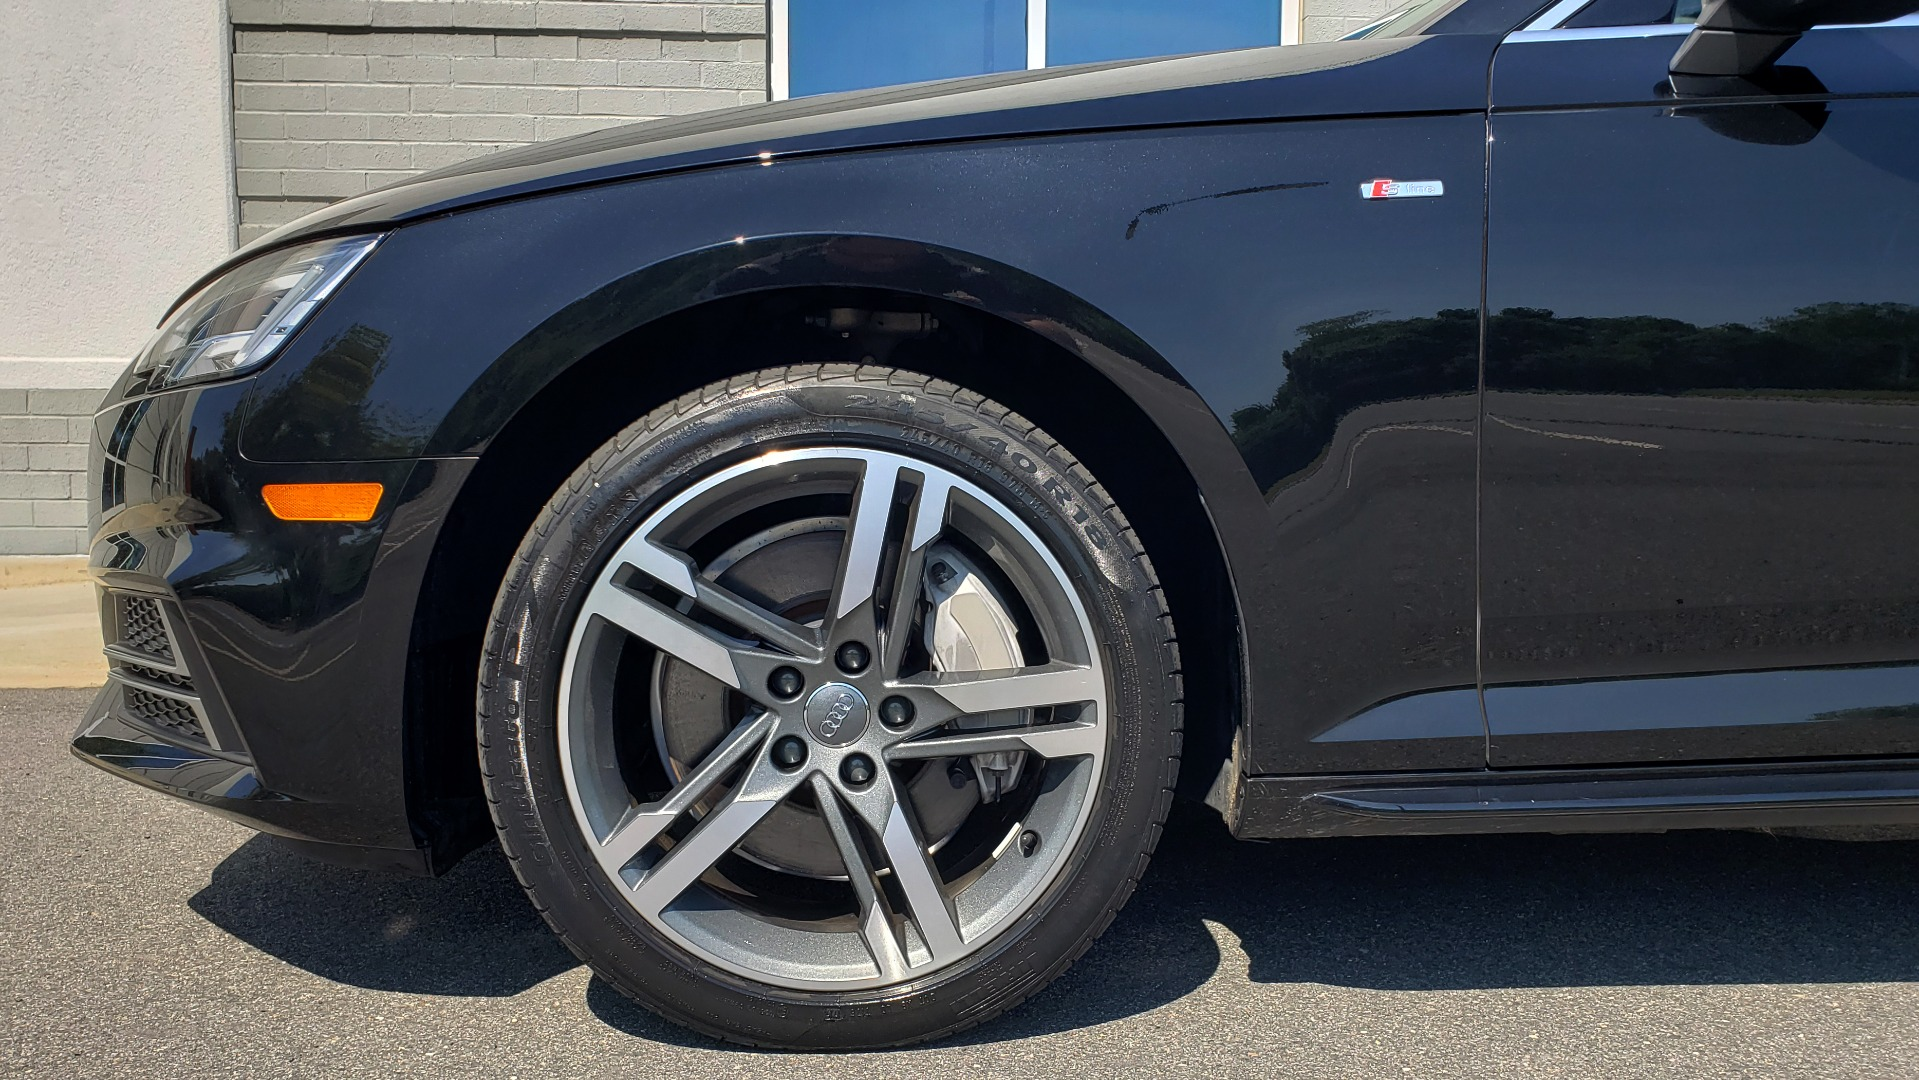 Used 2018 Audi A4 PREMIUM PLUS 2.0T / NAV / SUNROOF / B&O SND / CLD WTHR / REARVIEW for sale $30,695 at Formula Imports in Charlotte NC 28227 77